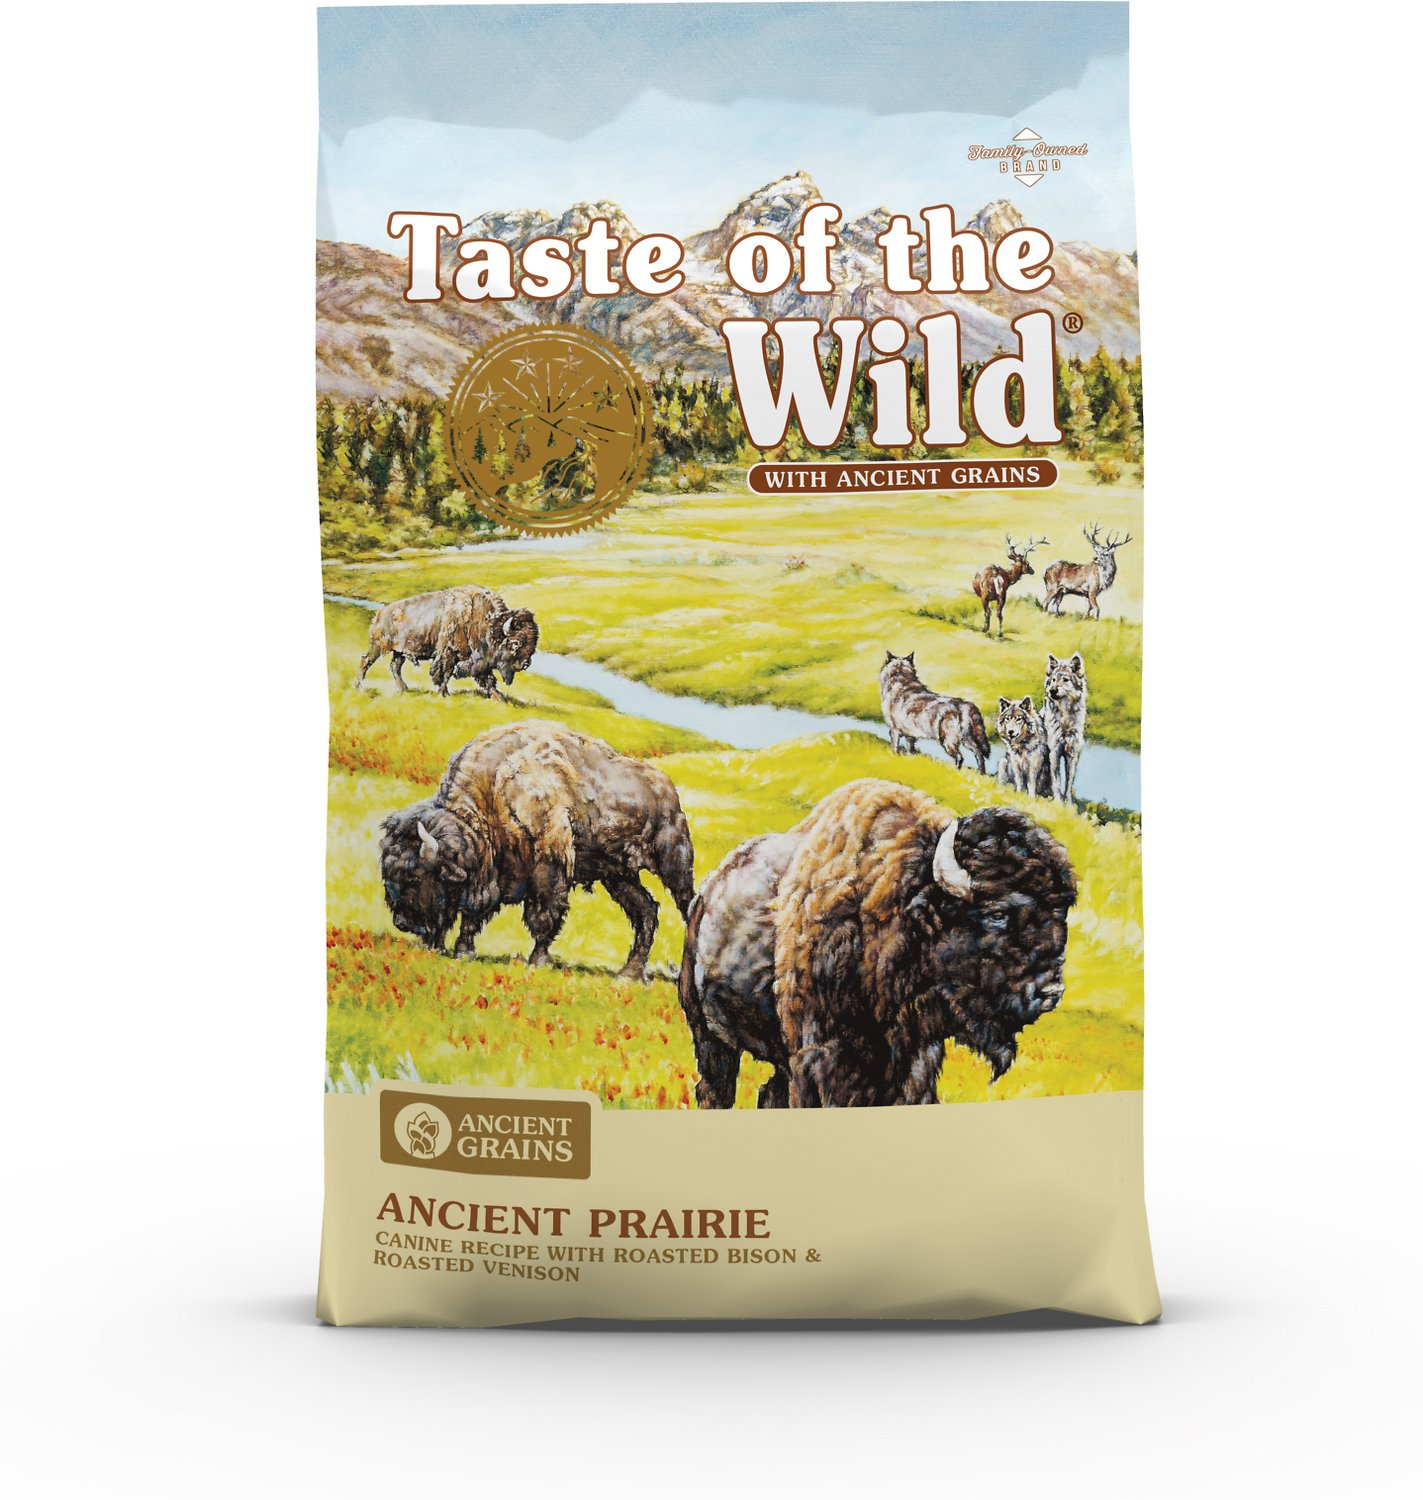 Taste Of The Wild Dog Food Reviews >> Taste Of The Wild Ancient Prairie With Ancient Grains Dry Dog Food 5 Lb Bag